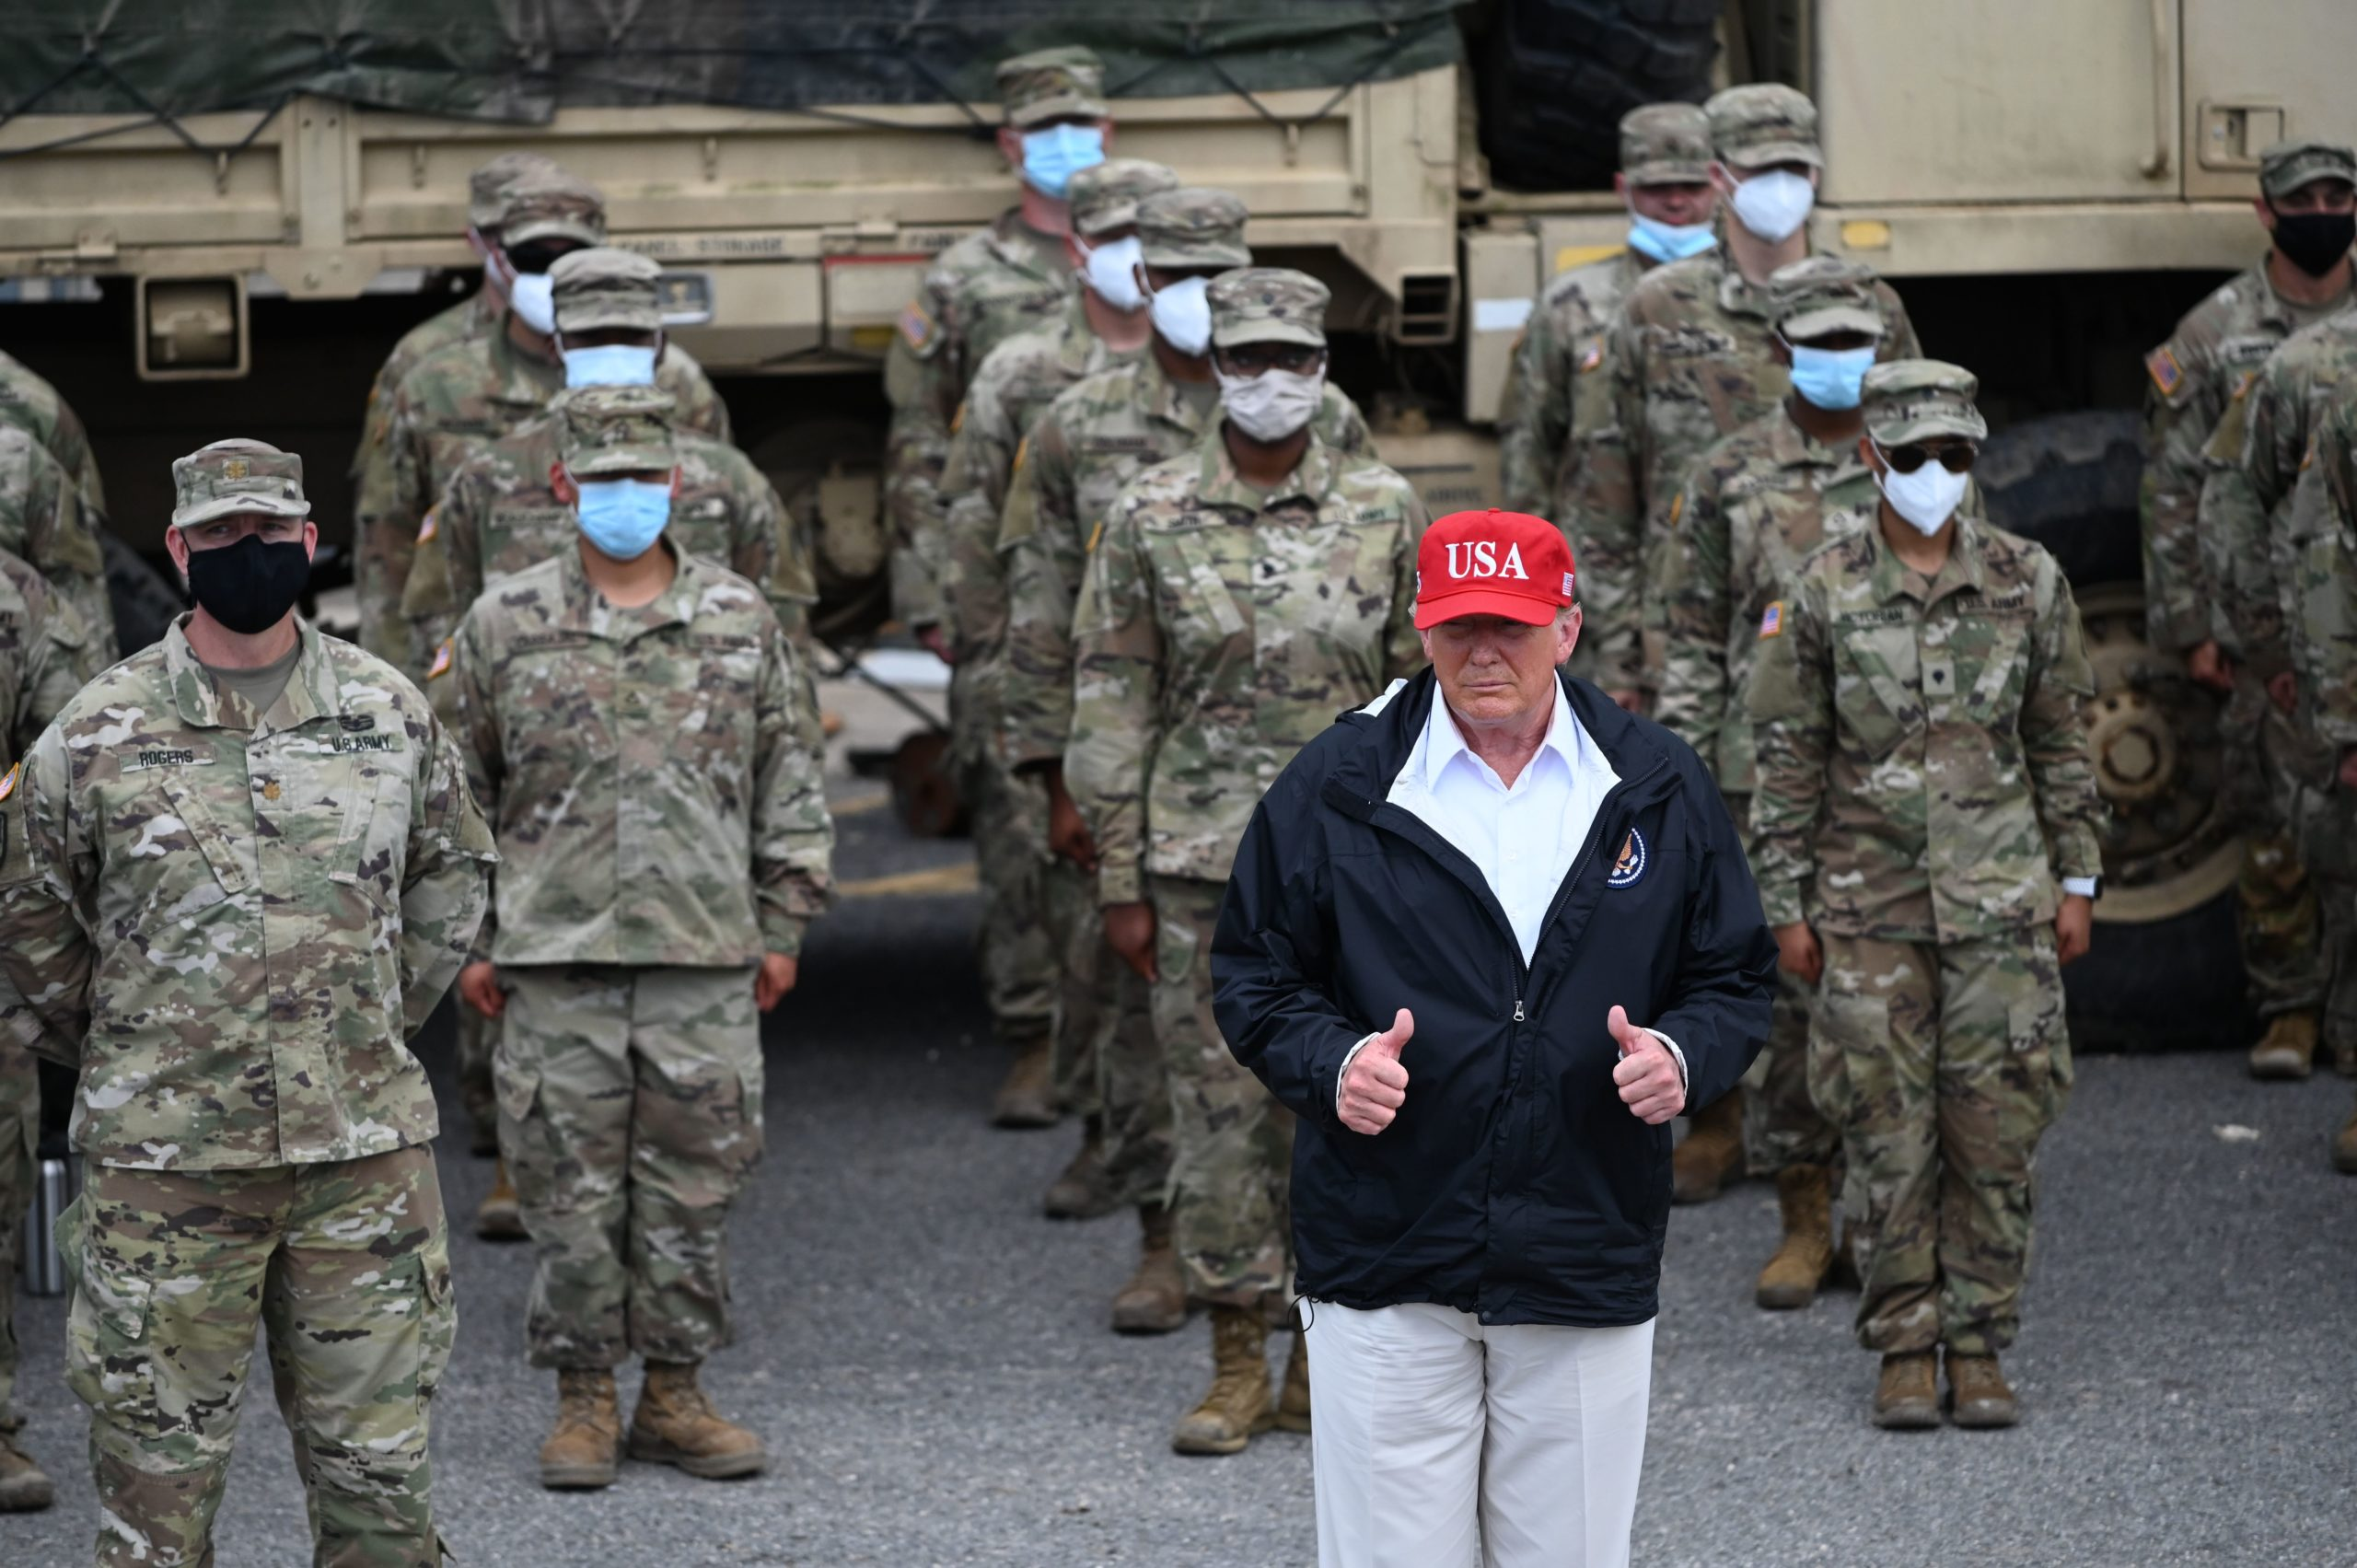 US President Donald Trump poses with National Guard troops in Lake Charles, Louisiana, on August 29, 2020. Trump surveyed damage in the area caused by Hurricane Laura. - At least 15 people were killed after Laura slammed into the southern US states of Louisiana and Texas, authorities and local media said on August 28. (Photo by Roberto Schmidt/AFP via Getty Images)